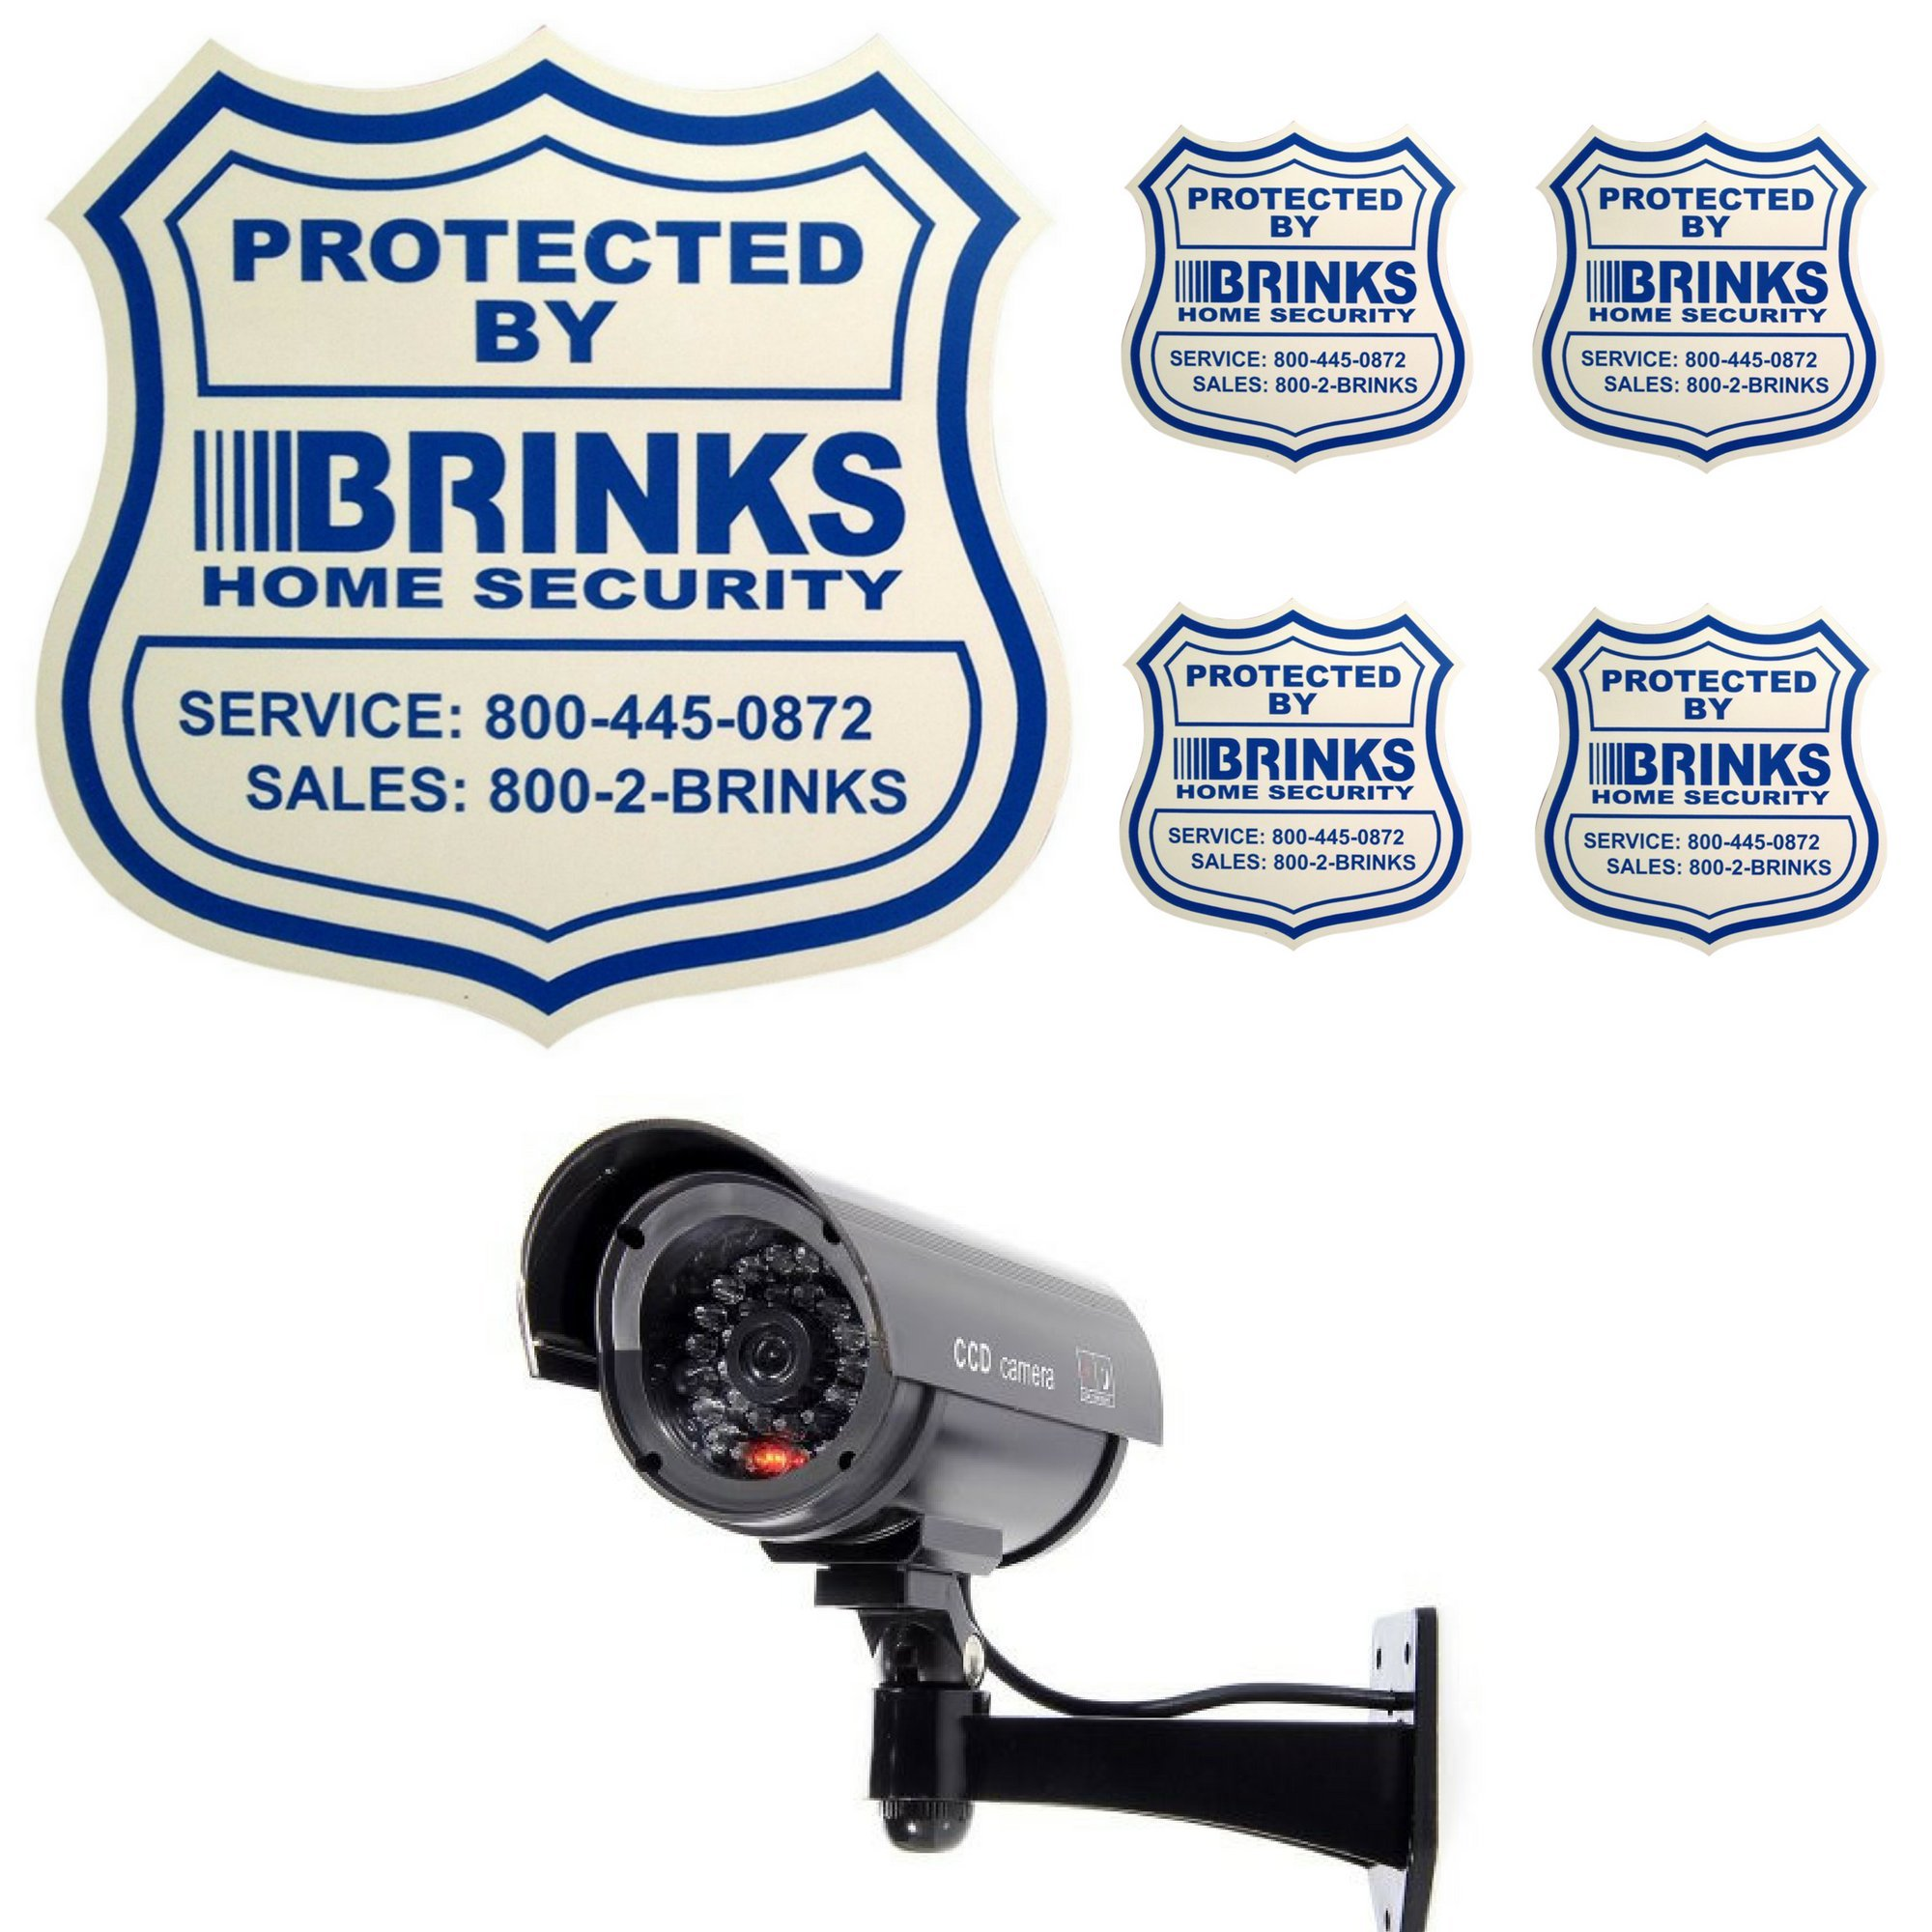 Home Security Yard Sign 4 Security Stickers Decals And Fake Security Dummy Camera CCTV Indoor Outdoor with one LED Light Bundle by Home Security